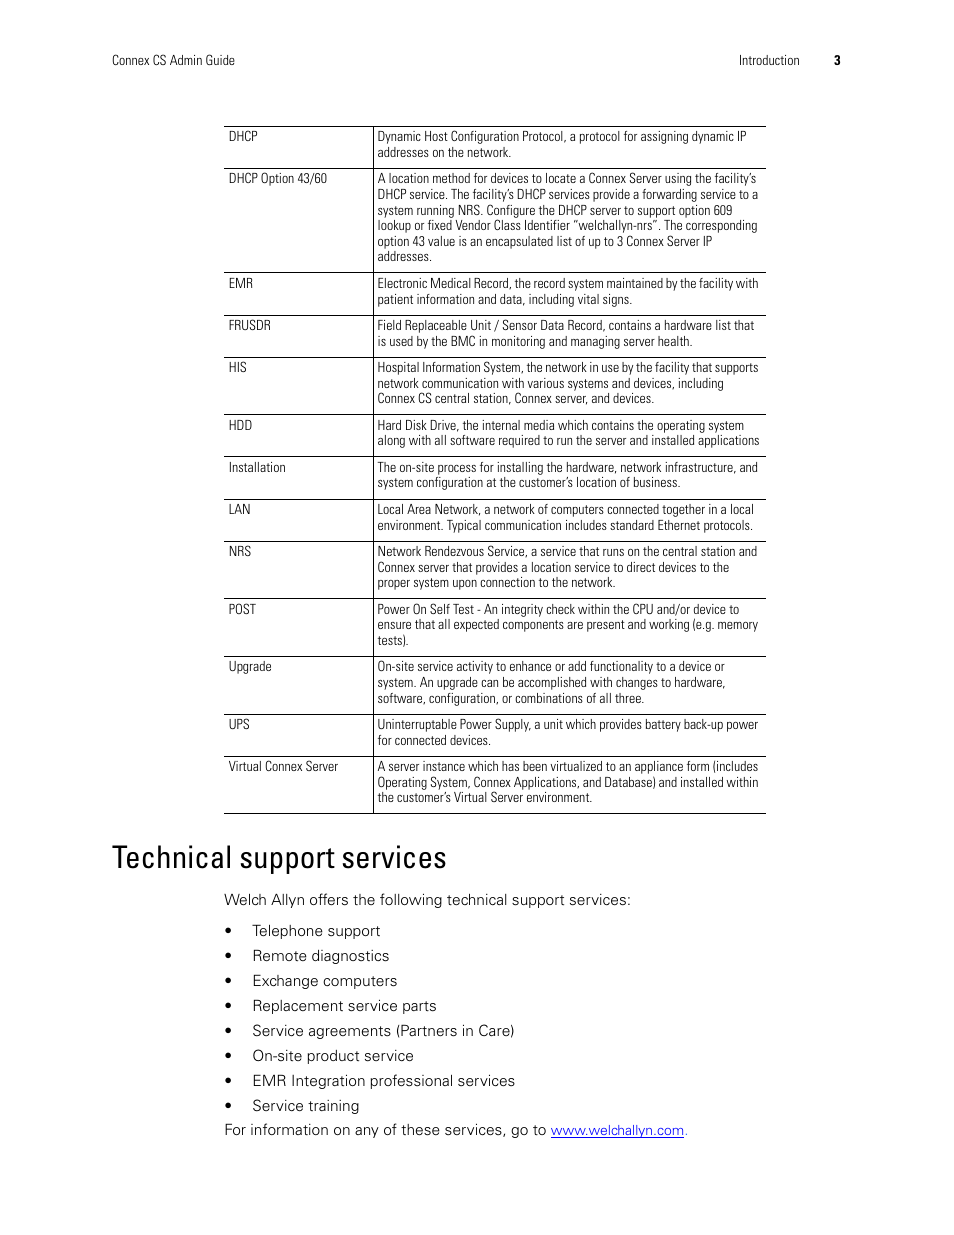 Technical support services | Welch Allyn Connex CS Central